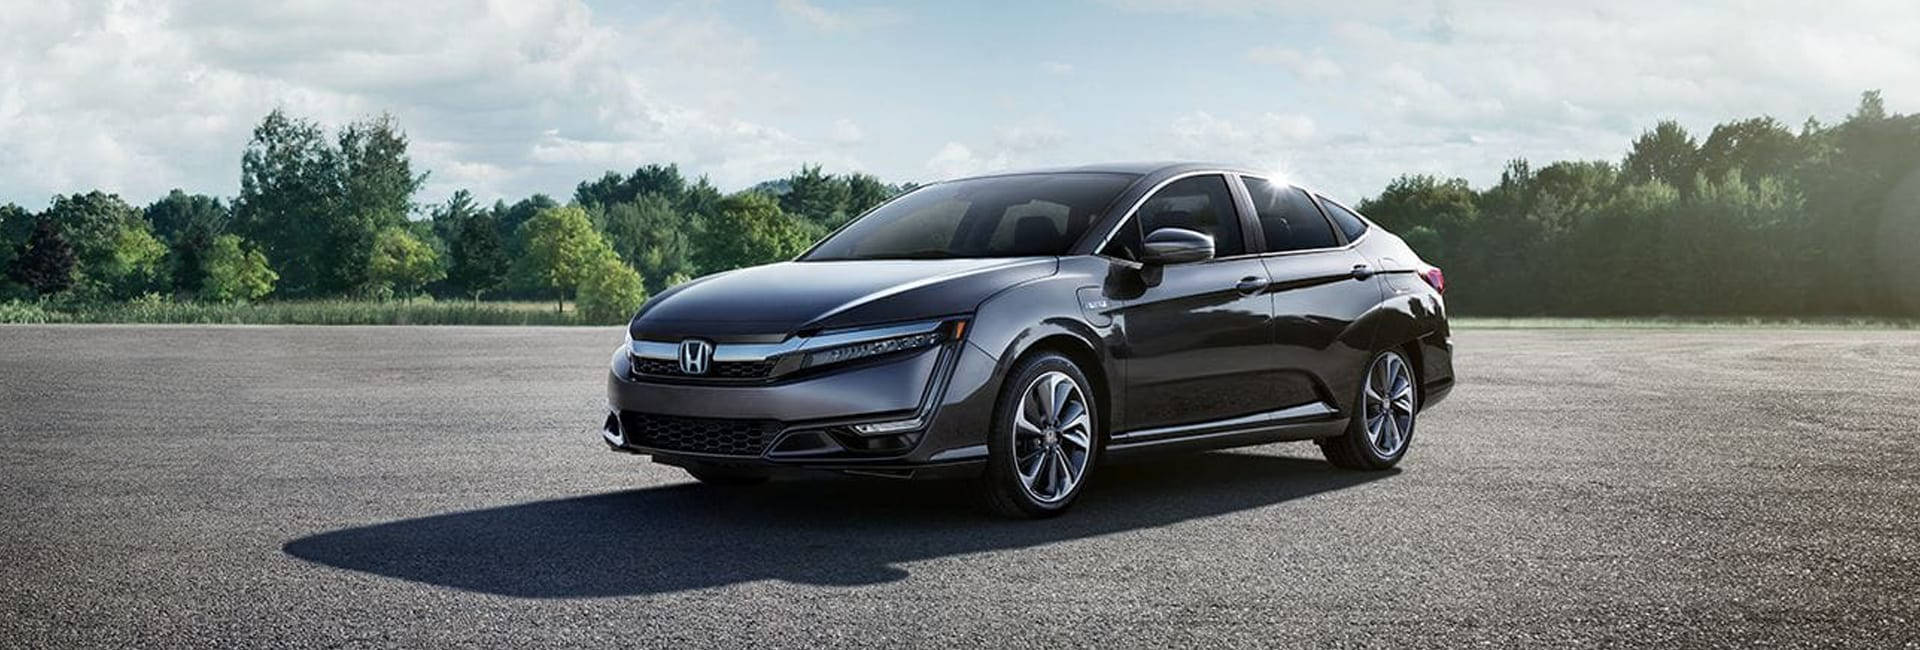 New 2019 Honda Clarity Plug-In Hybrid Exterior